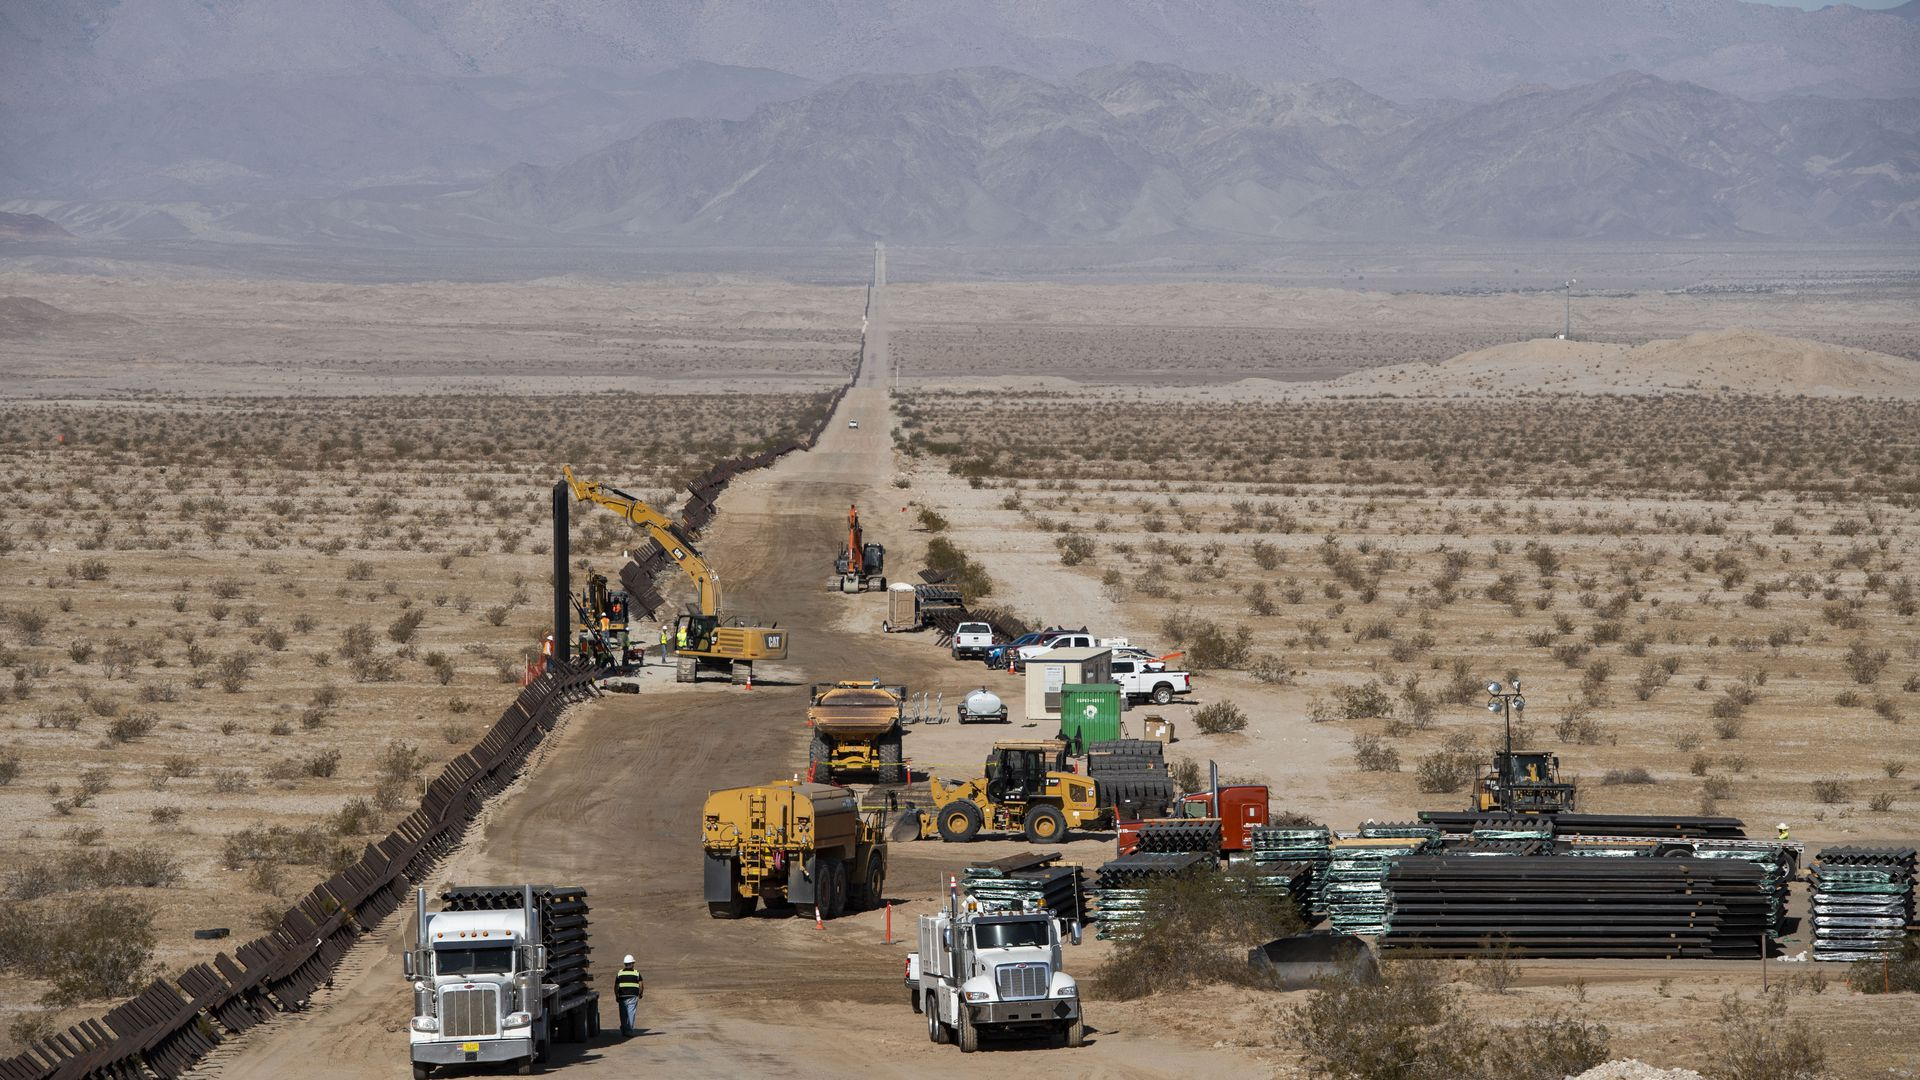 Construction begins along the U.S. border with Mexico where the new border wall will replace old fencing on August 23